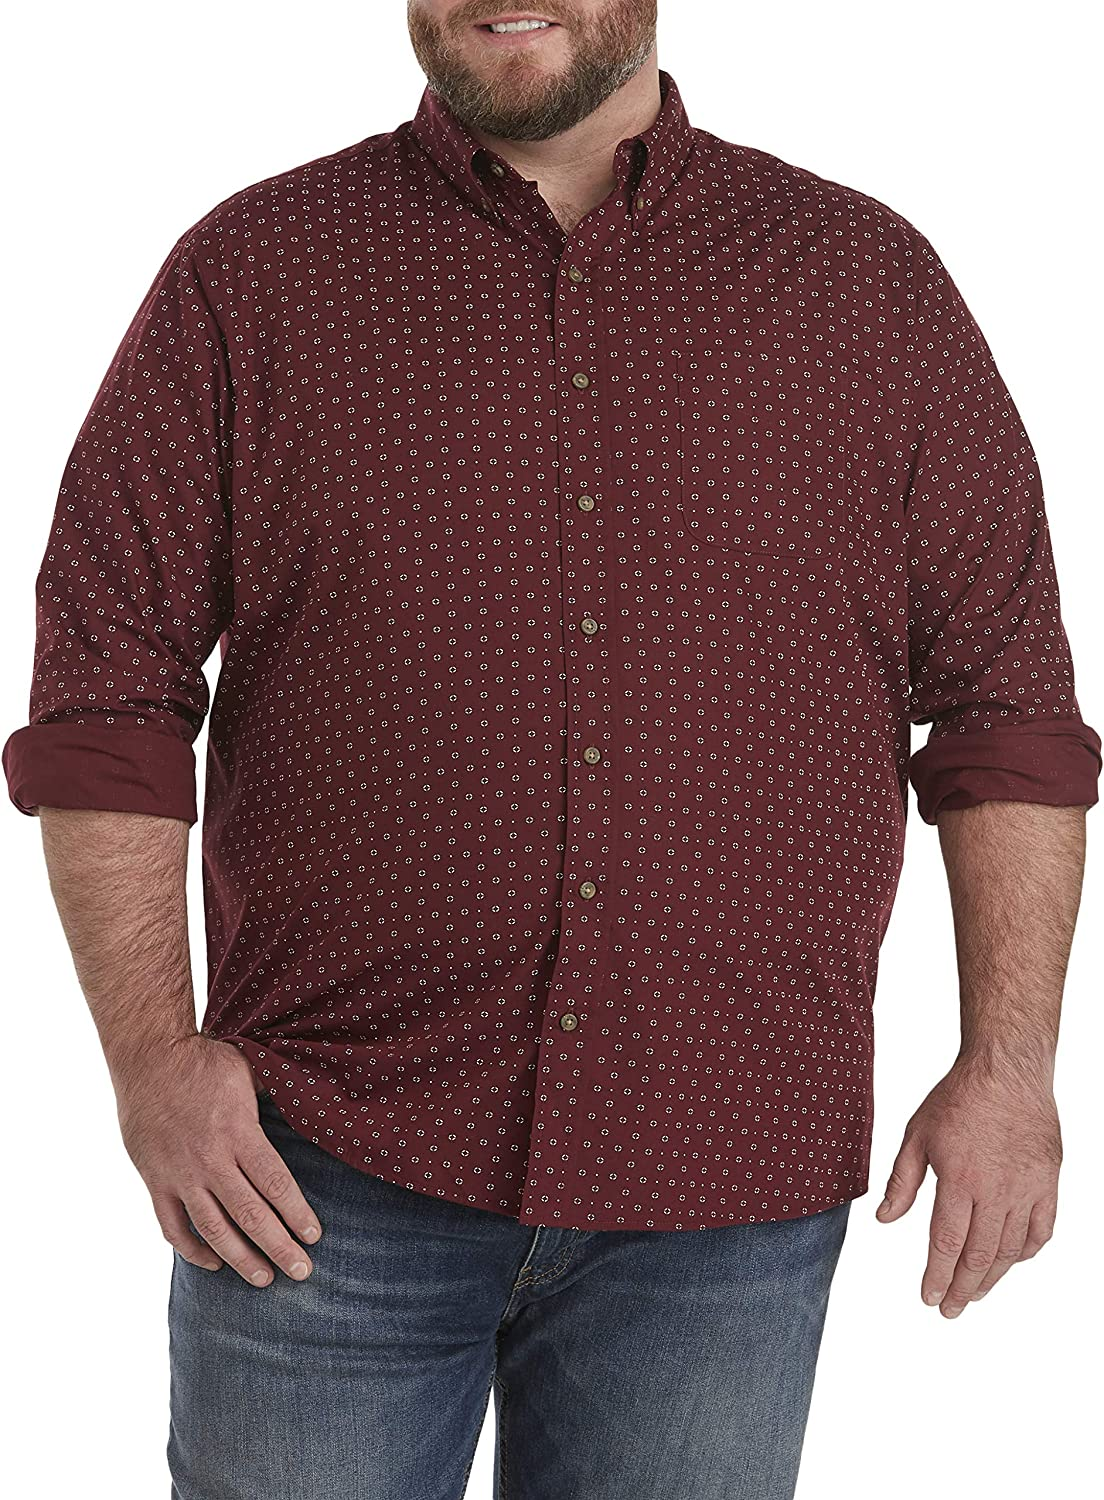 Harbor Bay by DXL Big and Tall Easy-Care Geo Print Sport Shirt, Tawny Port